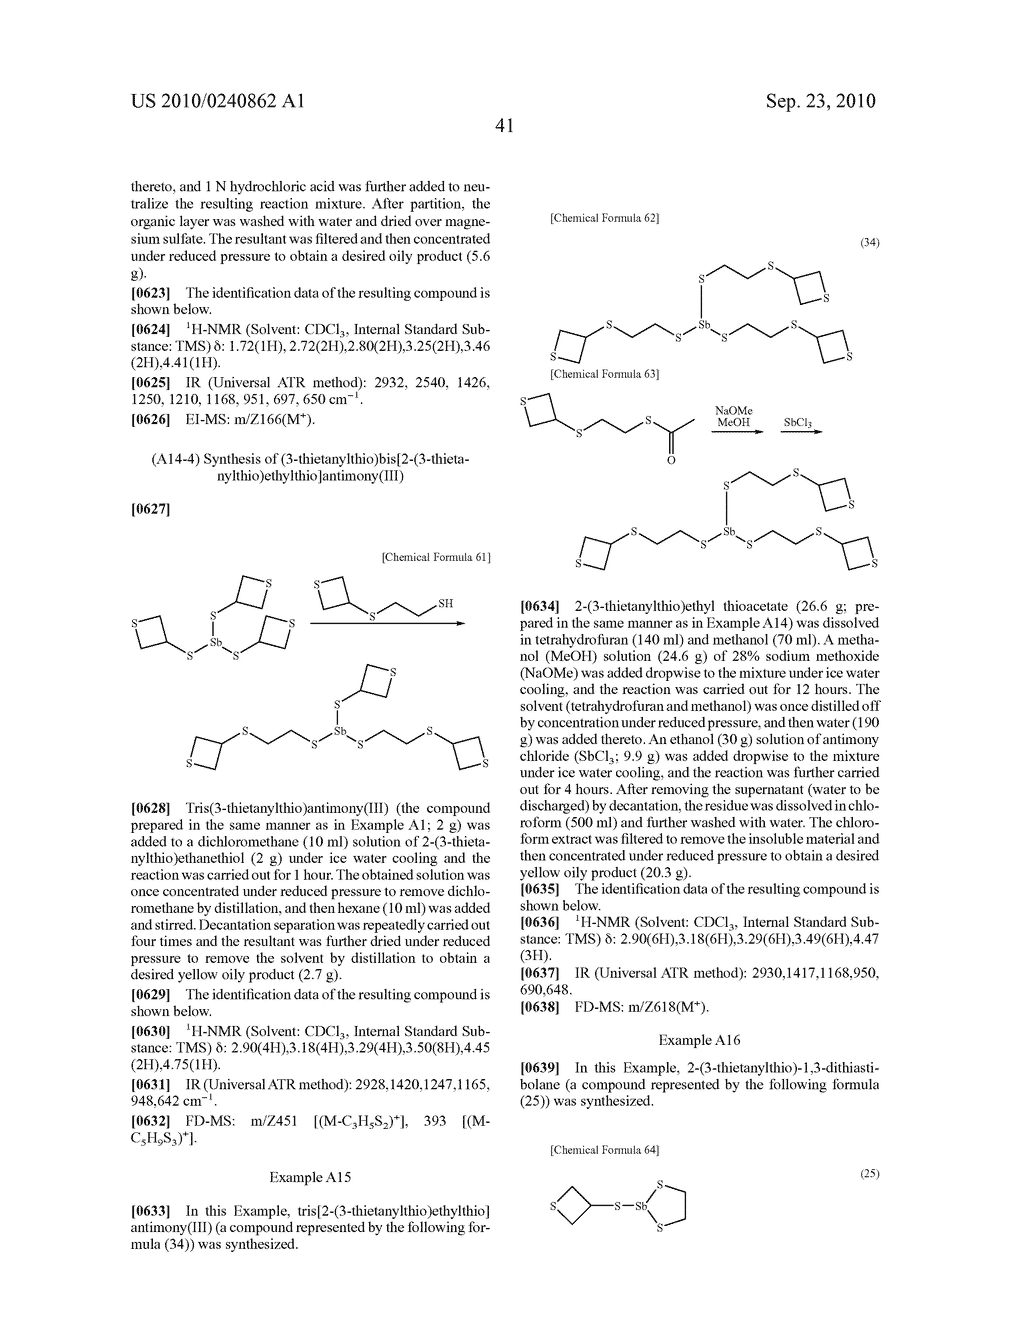 METAL THIETANE COMPOUND, POLYMERIZABLE COMPOSITION CONTAINING THE COMPOUND, RESIN AND USE OF THE RESIN - diagram, schematic, and image 42